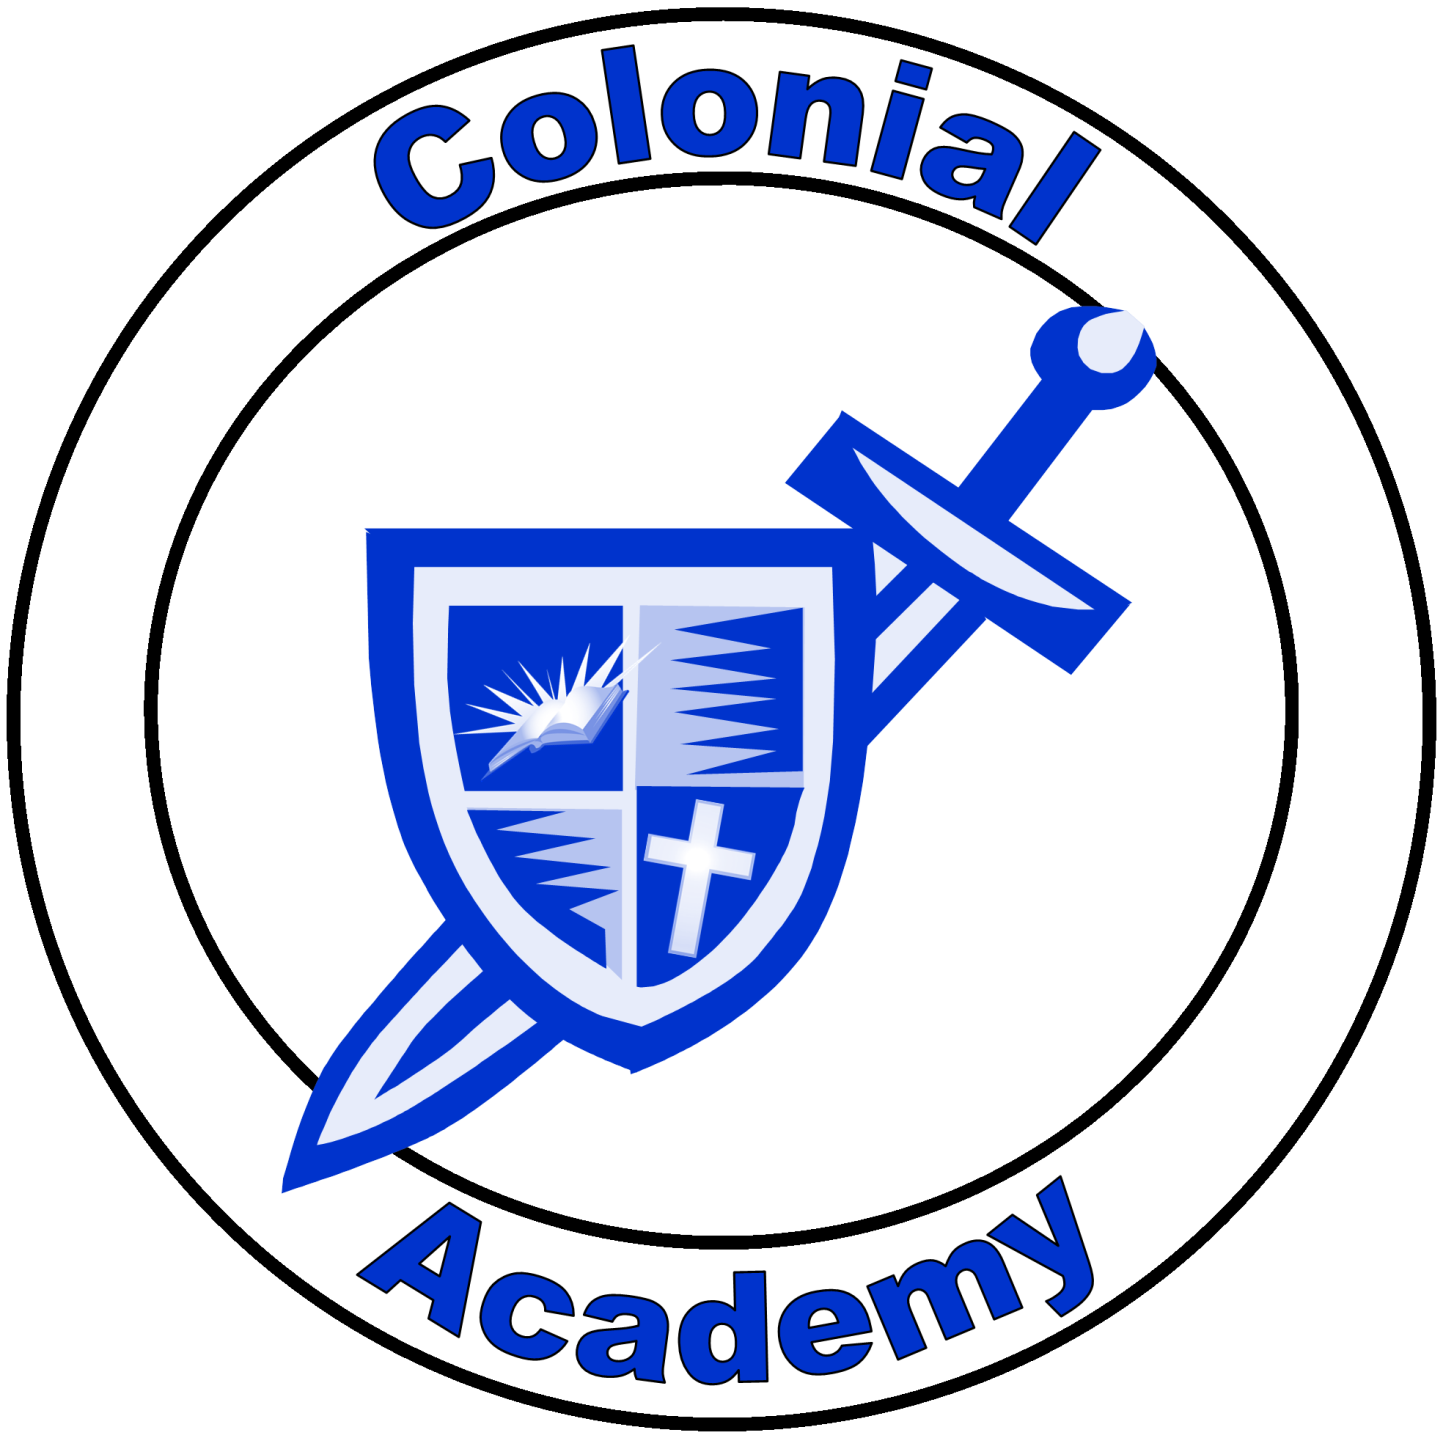 Colonial Academy